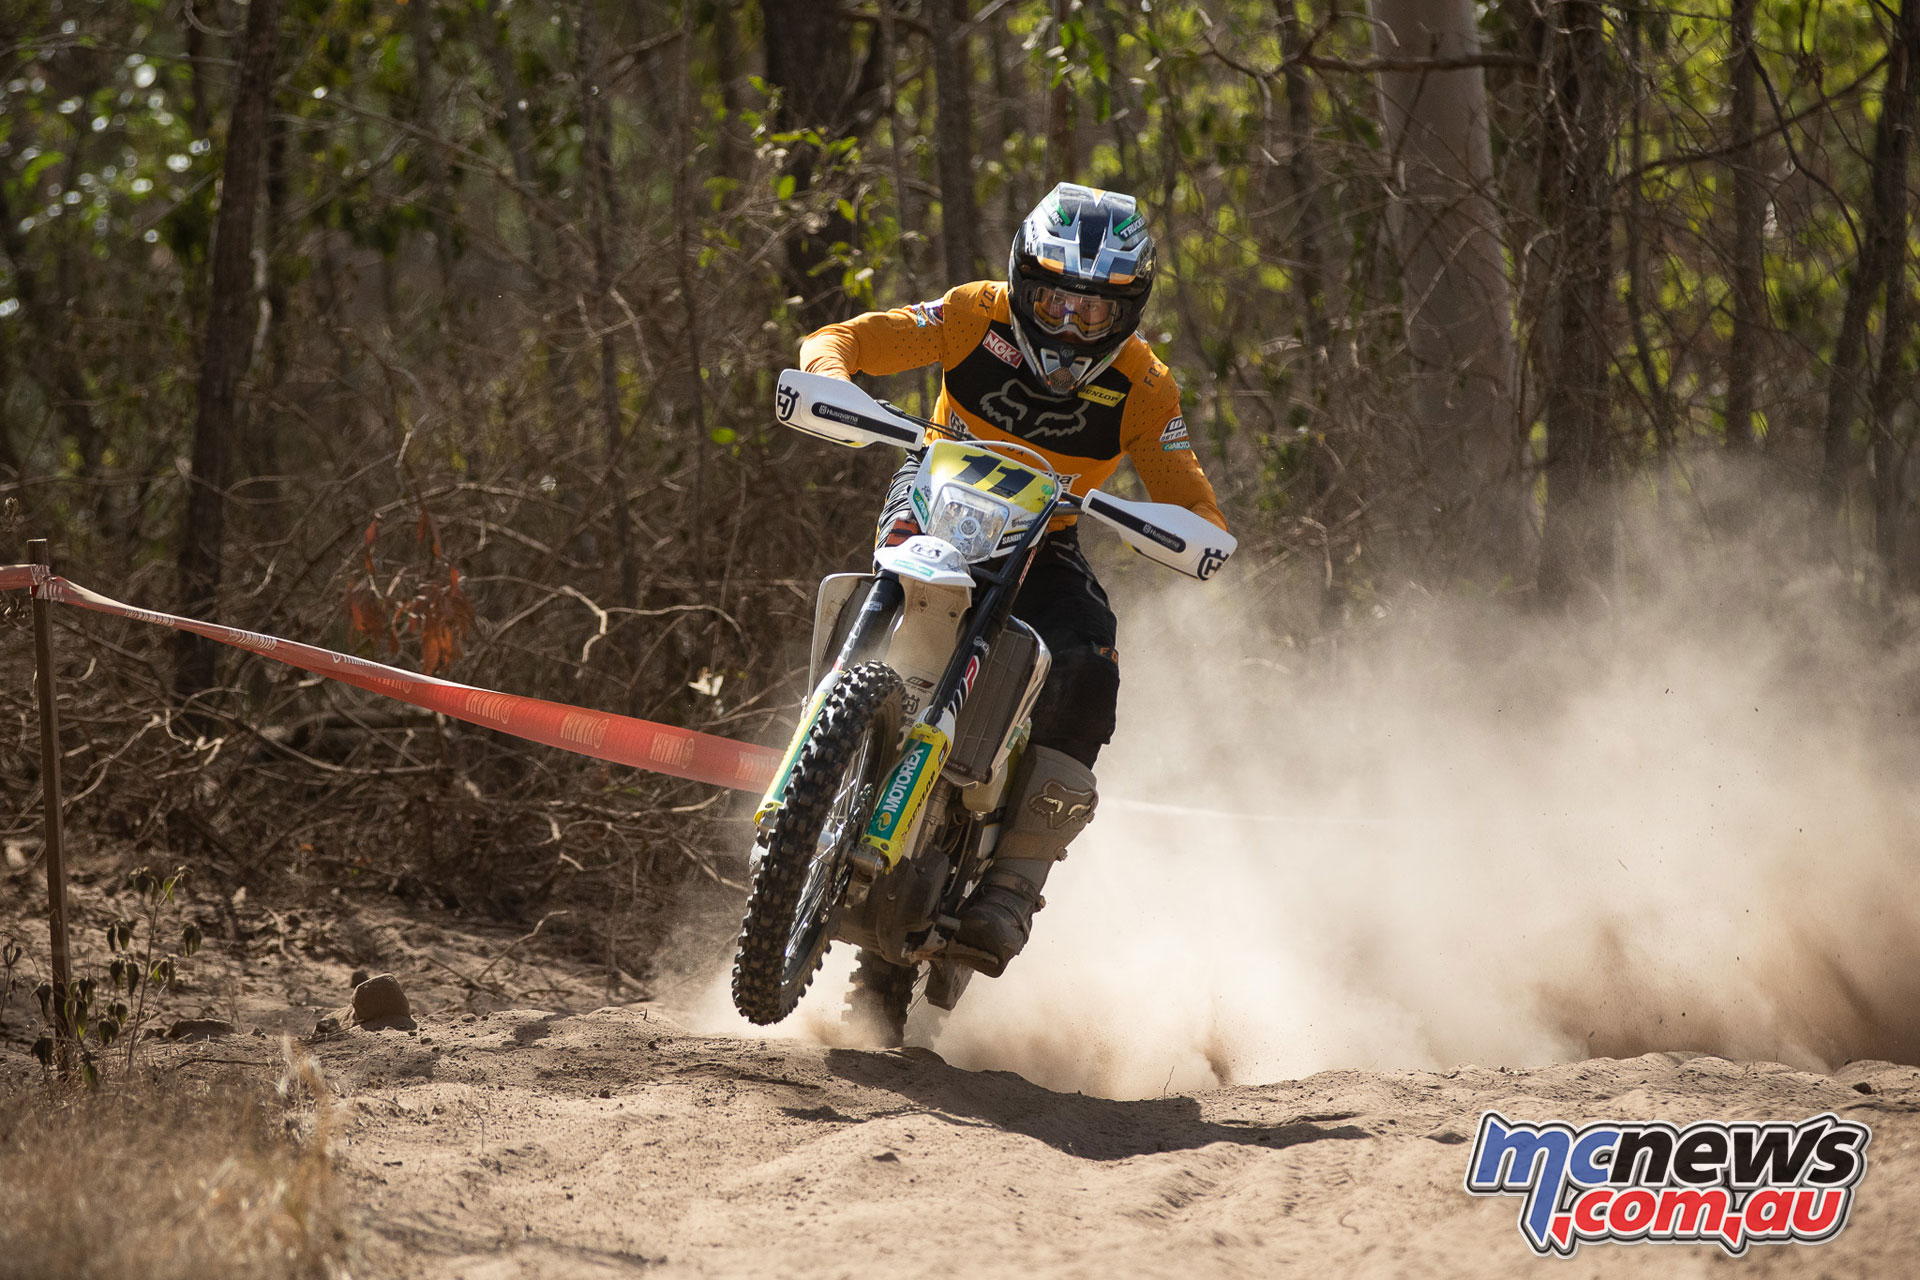 AORC Rounds 1 & 2 at Toowoomba with John Pearson